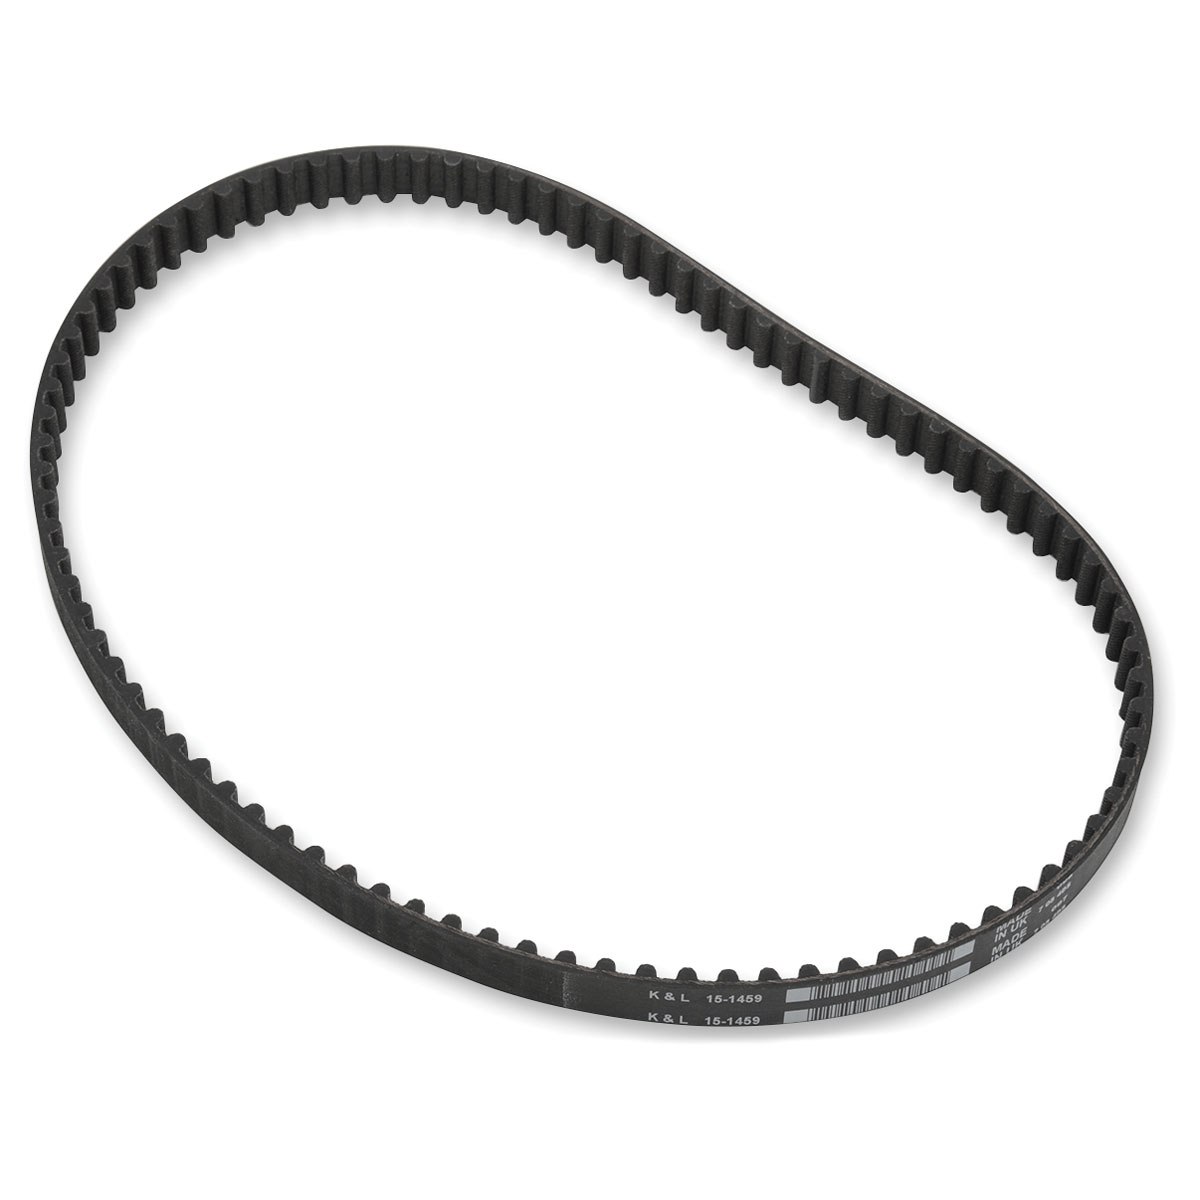 K&L Supply Co. Timing Belt